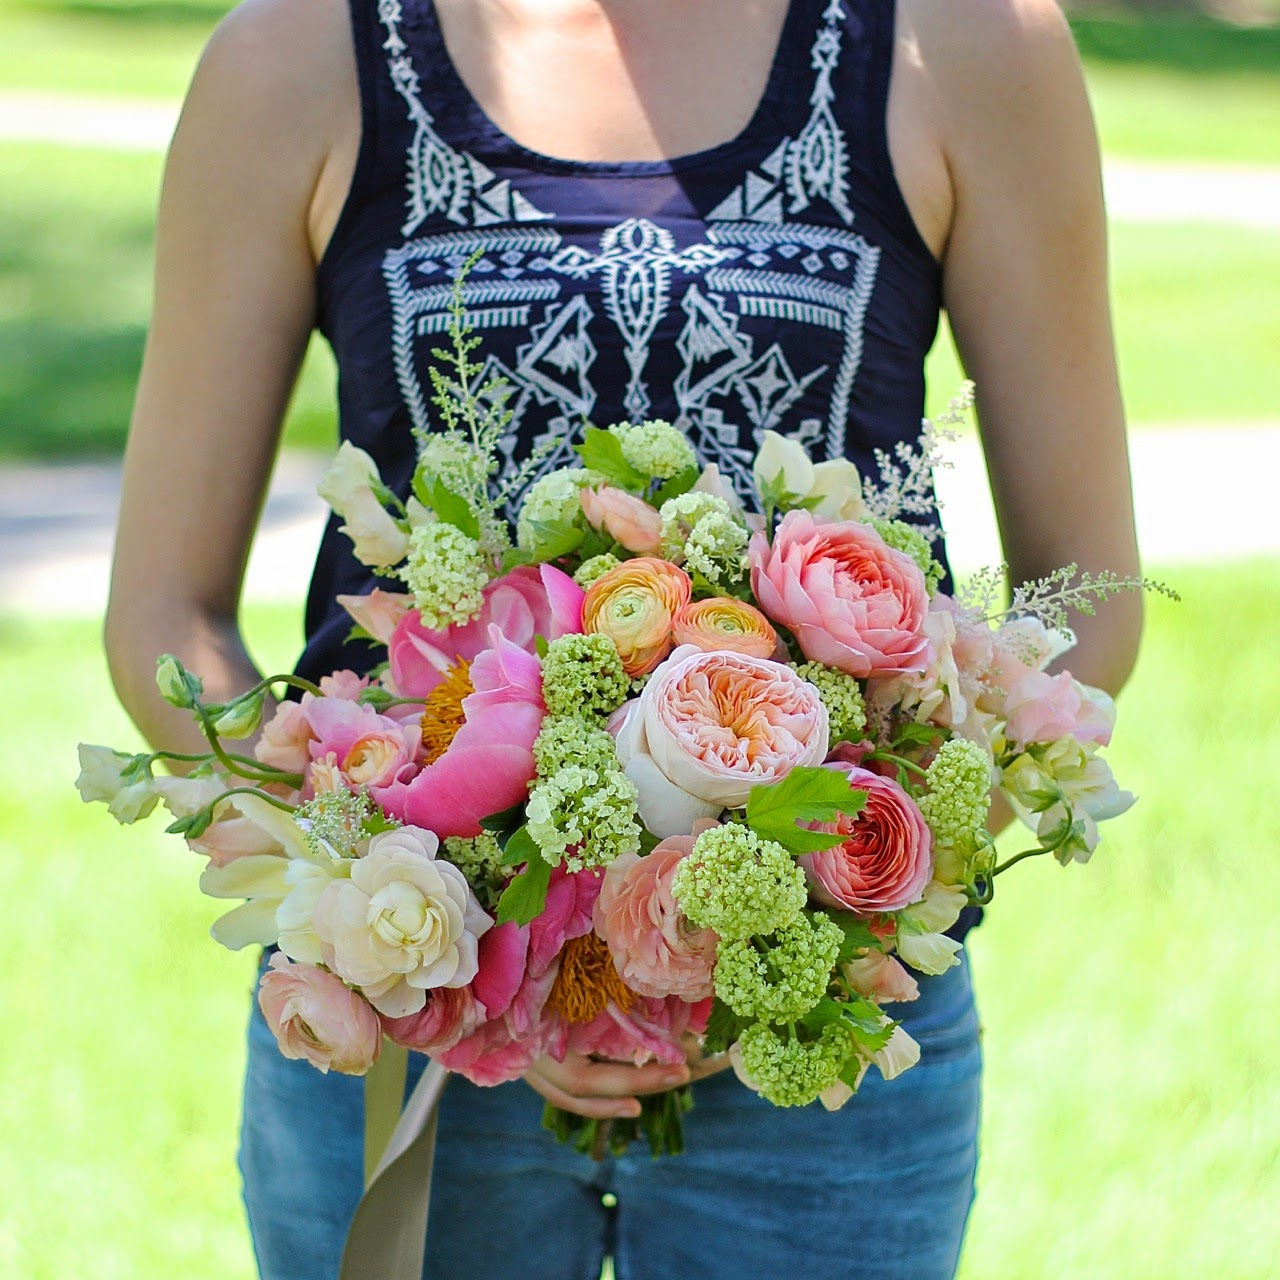 Sweet Pea Floral Design Detroit Ann Arbor Grosse Pointe Michigan wedding florist bouquet peach coral green spring asymmetrical wildly textured wandering ranunculus, garden roses, astilbe, viburnum, sweet peas, peony peonies at Earhart Manor